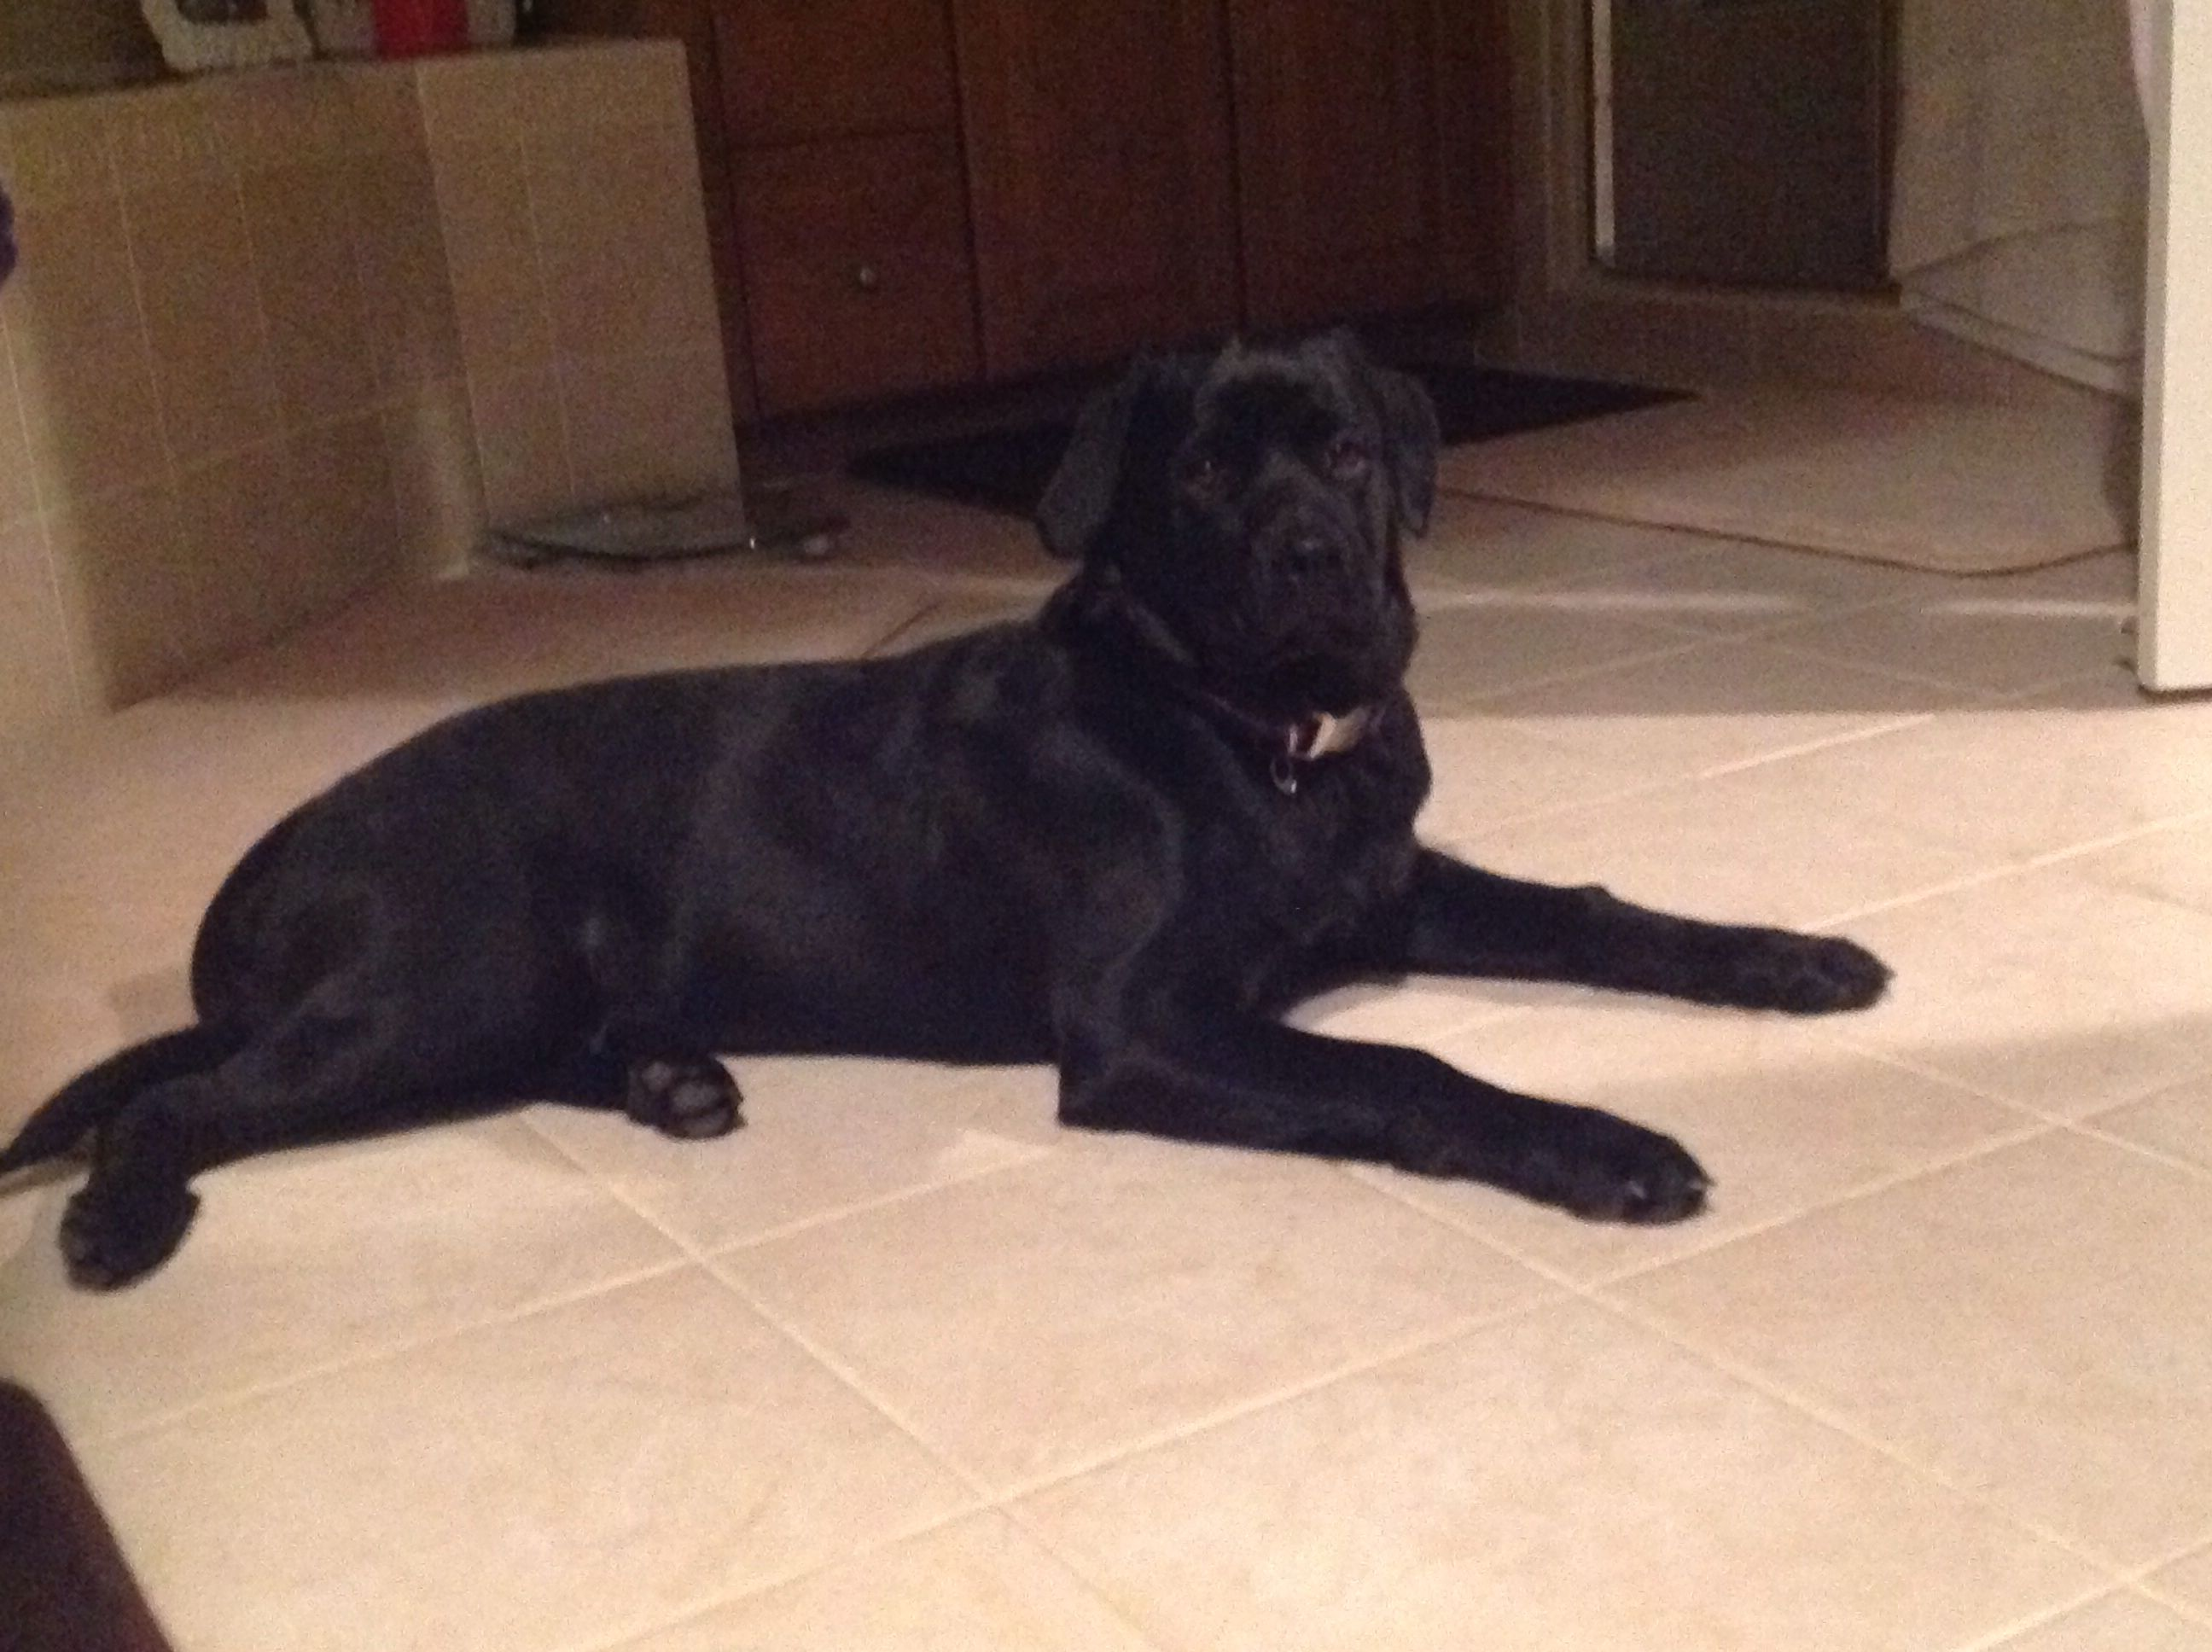 Labrottie Black Lab Mixed With Rottweiler Female 6 Months 51 Lbs Likely Grow To 75 80lbs Sweetest Pup Ever She Has Made Our Lab Dogs New Puppy Puppies